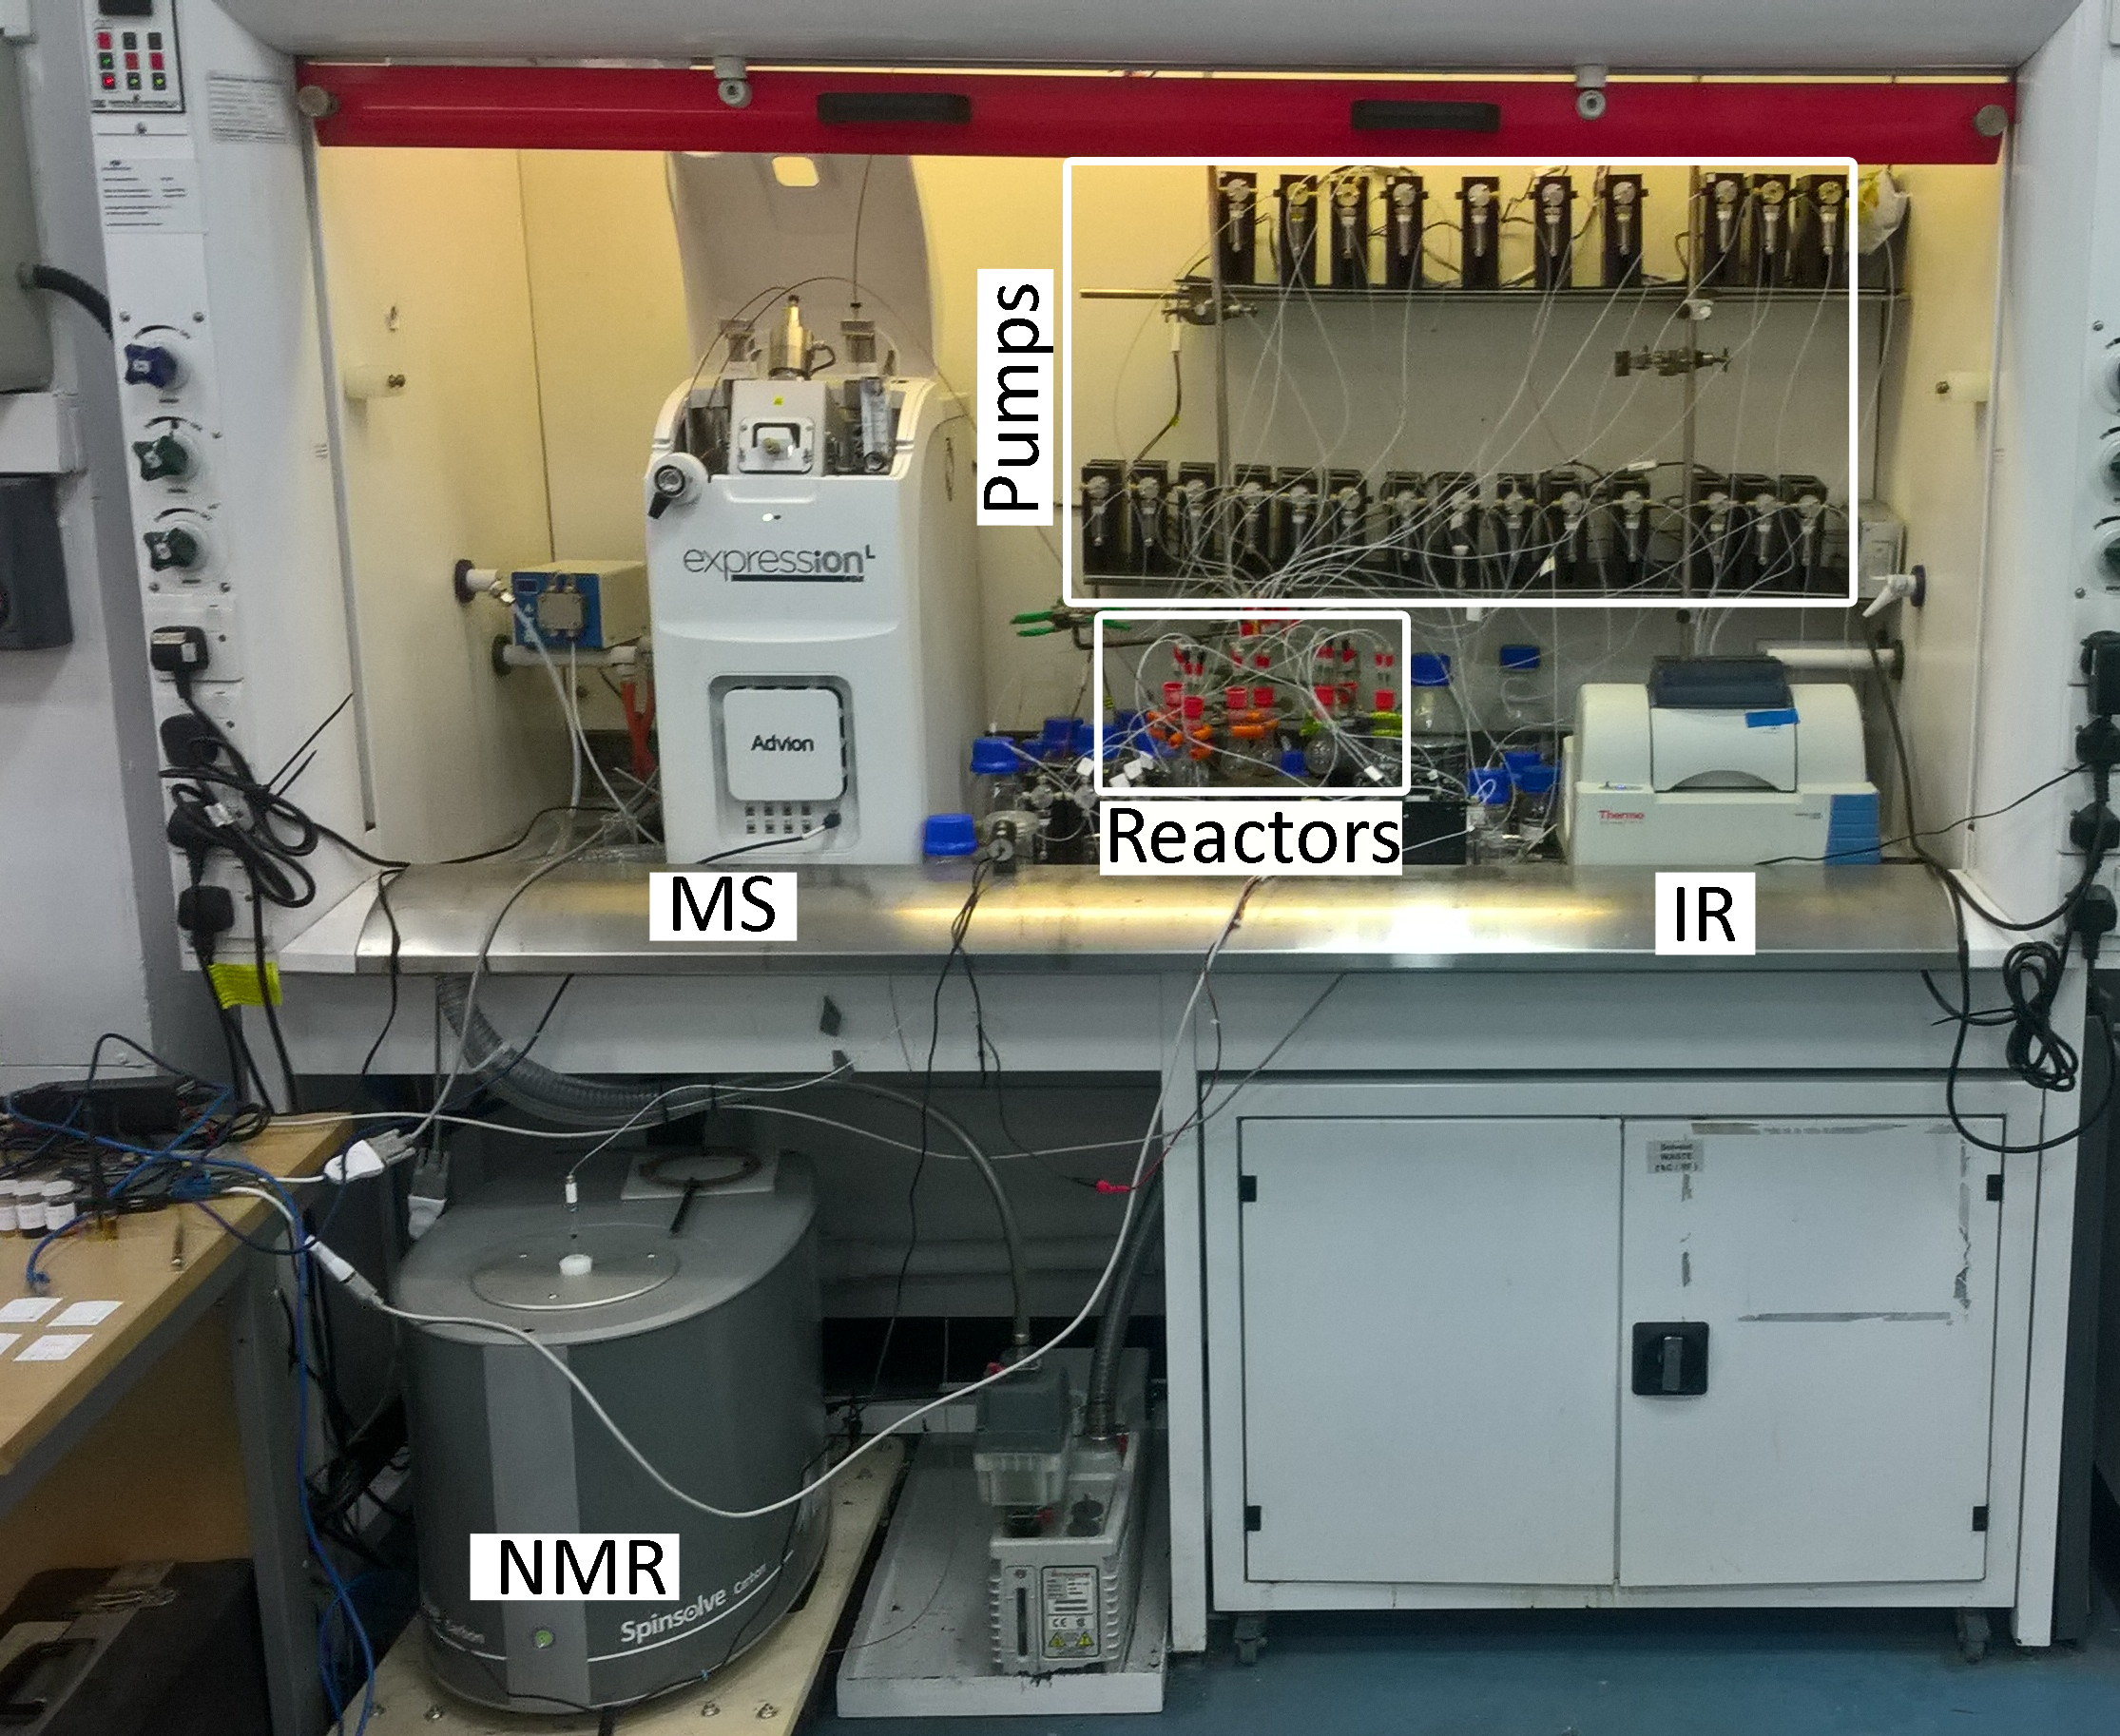 The robot in question. MS = Mass Spectrometer; IR = Infrared Spectrometer.